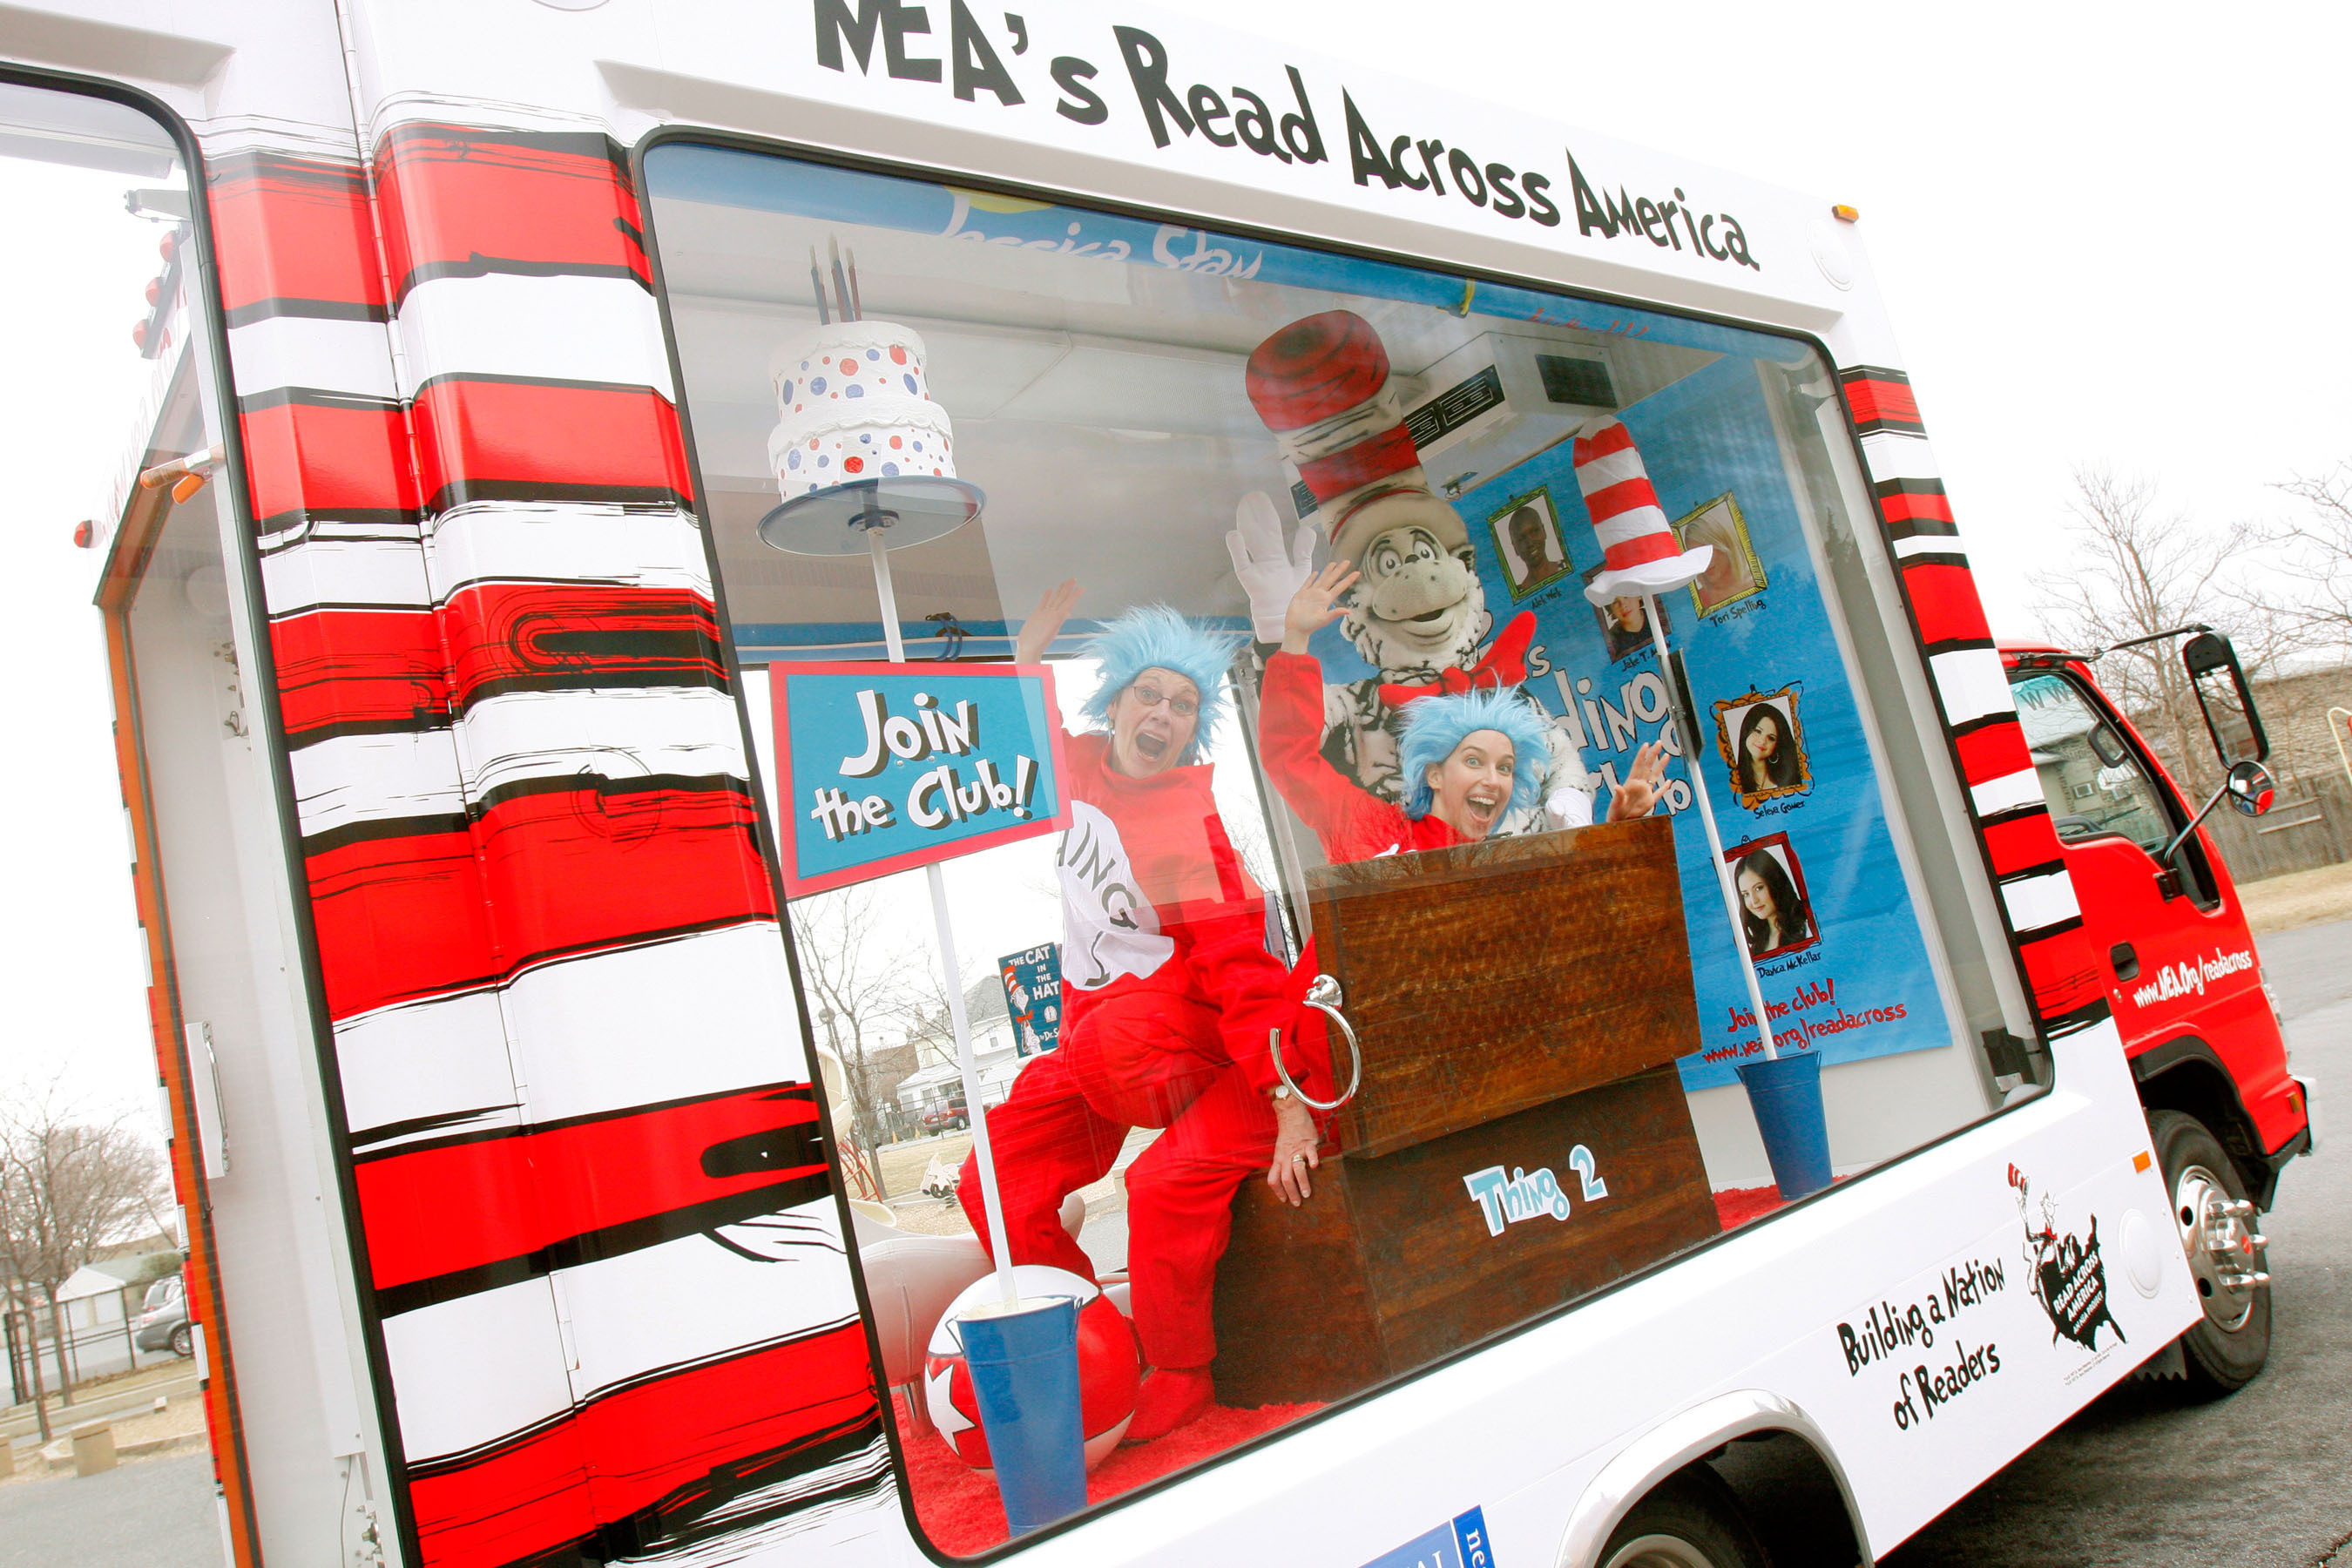 NEA's Cat-a-Van Reading Tour Hits the Road to Get Kids Reading, Brushing. (PRNewsFoto/National Education Association) (PRNewsFoto/NATIONAL EDUCATION ASSOCIATION)